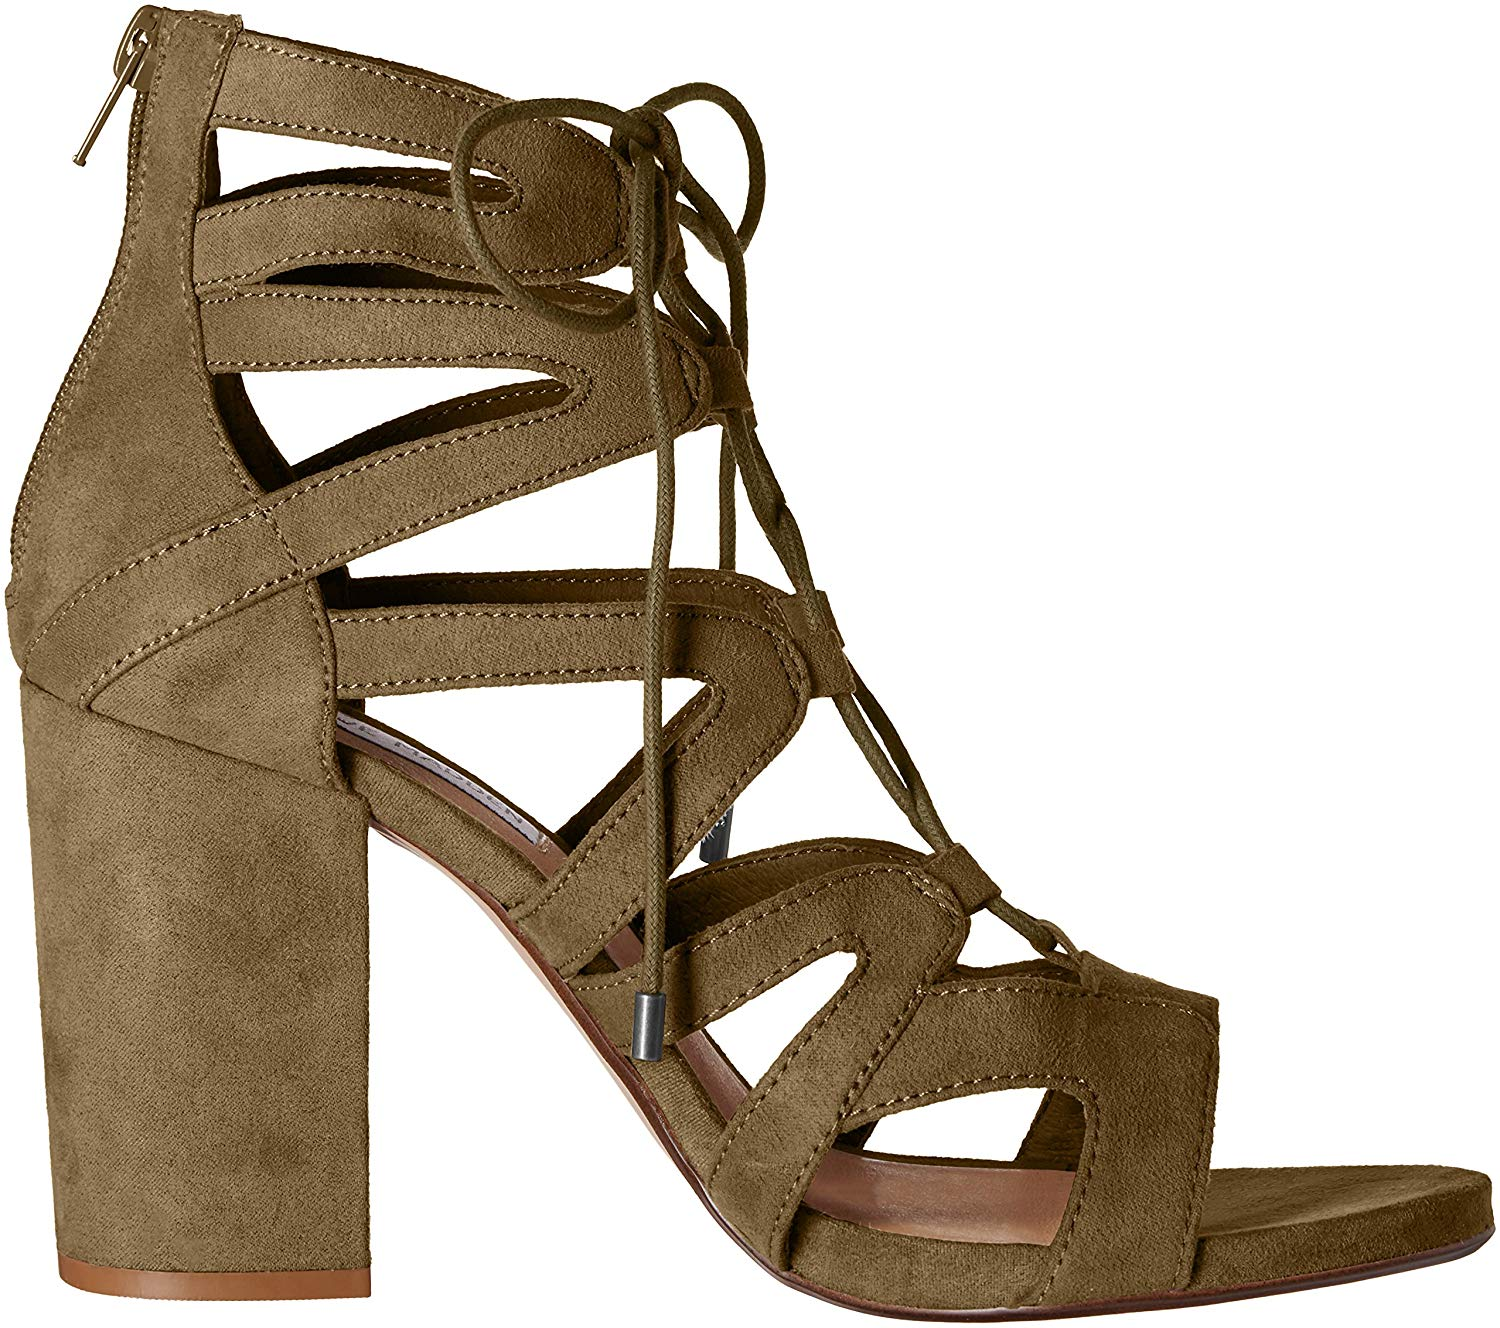 b4d326865d0 Steve Madden Womens Gal LaceUp Open Toe Casual Strappy Sandals